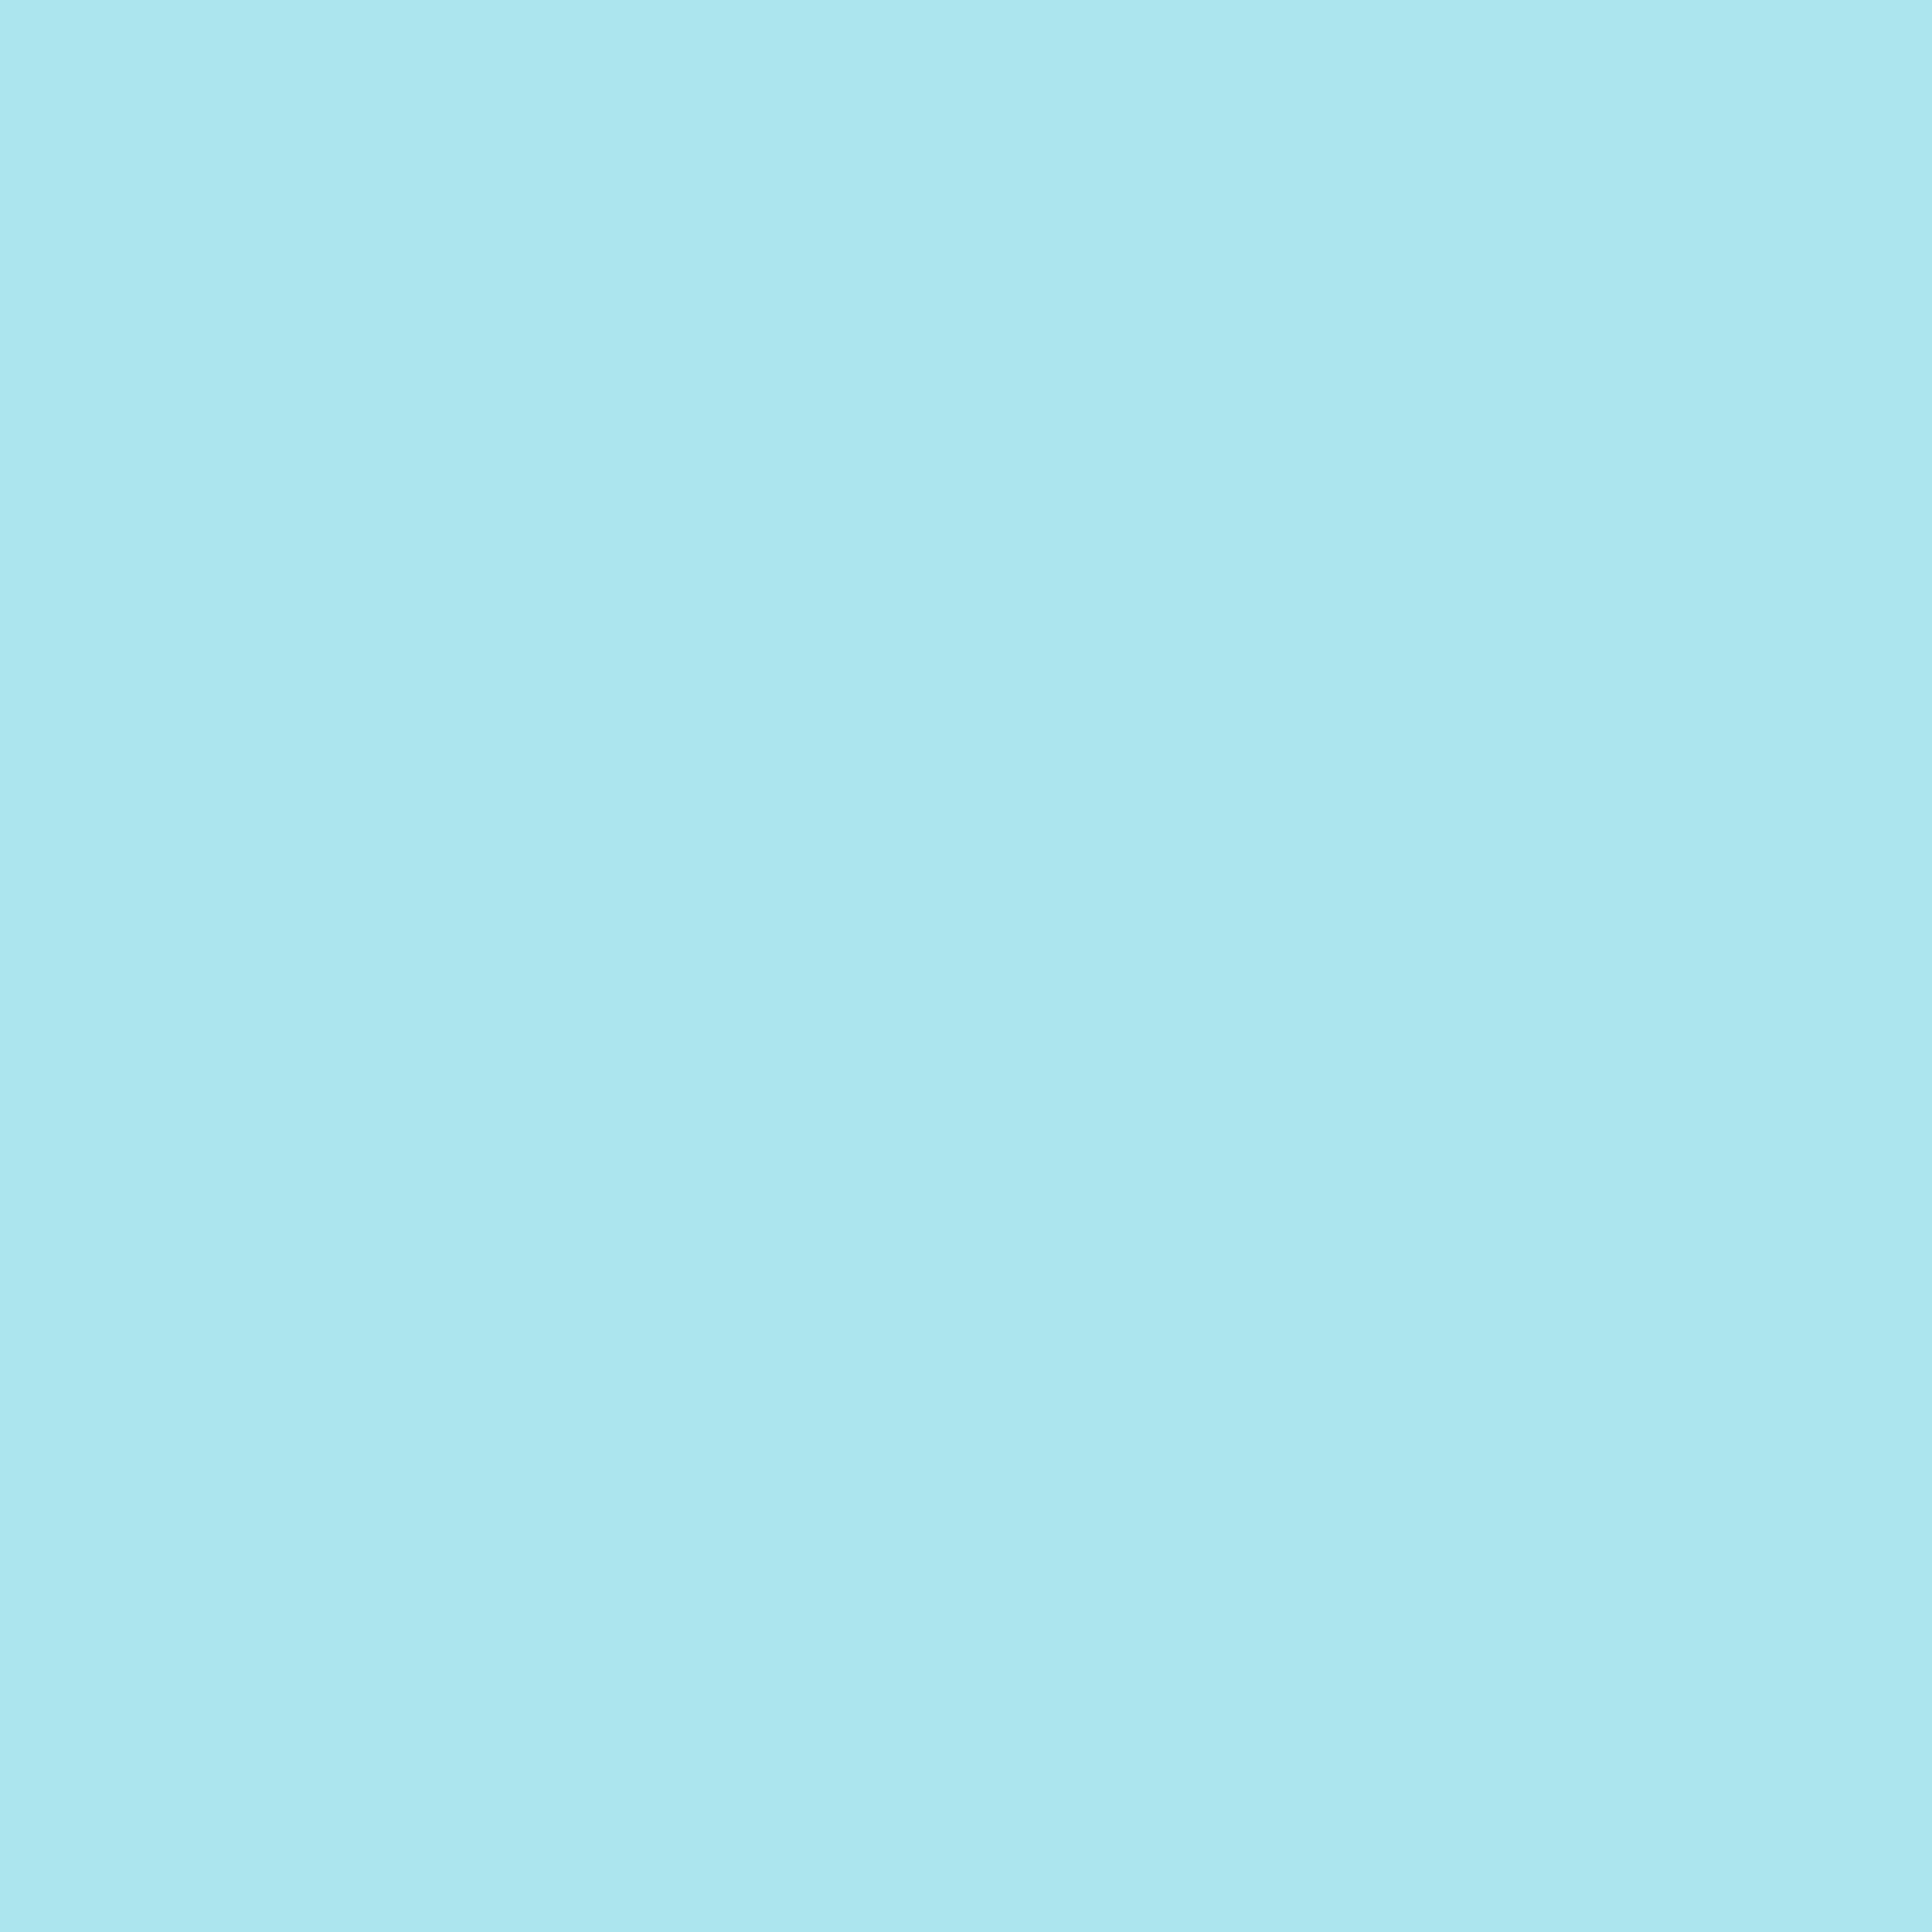 2048x2048 Blizzard Blue Solid Color Background